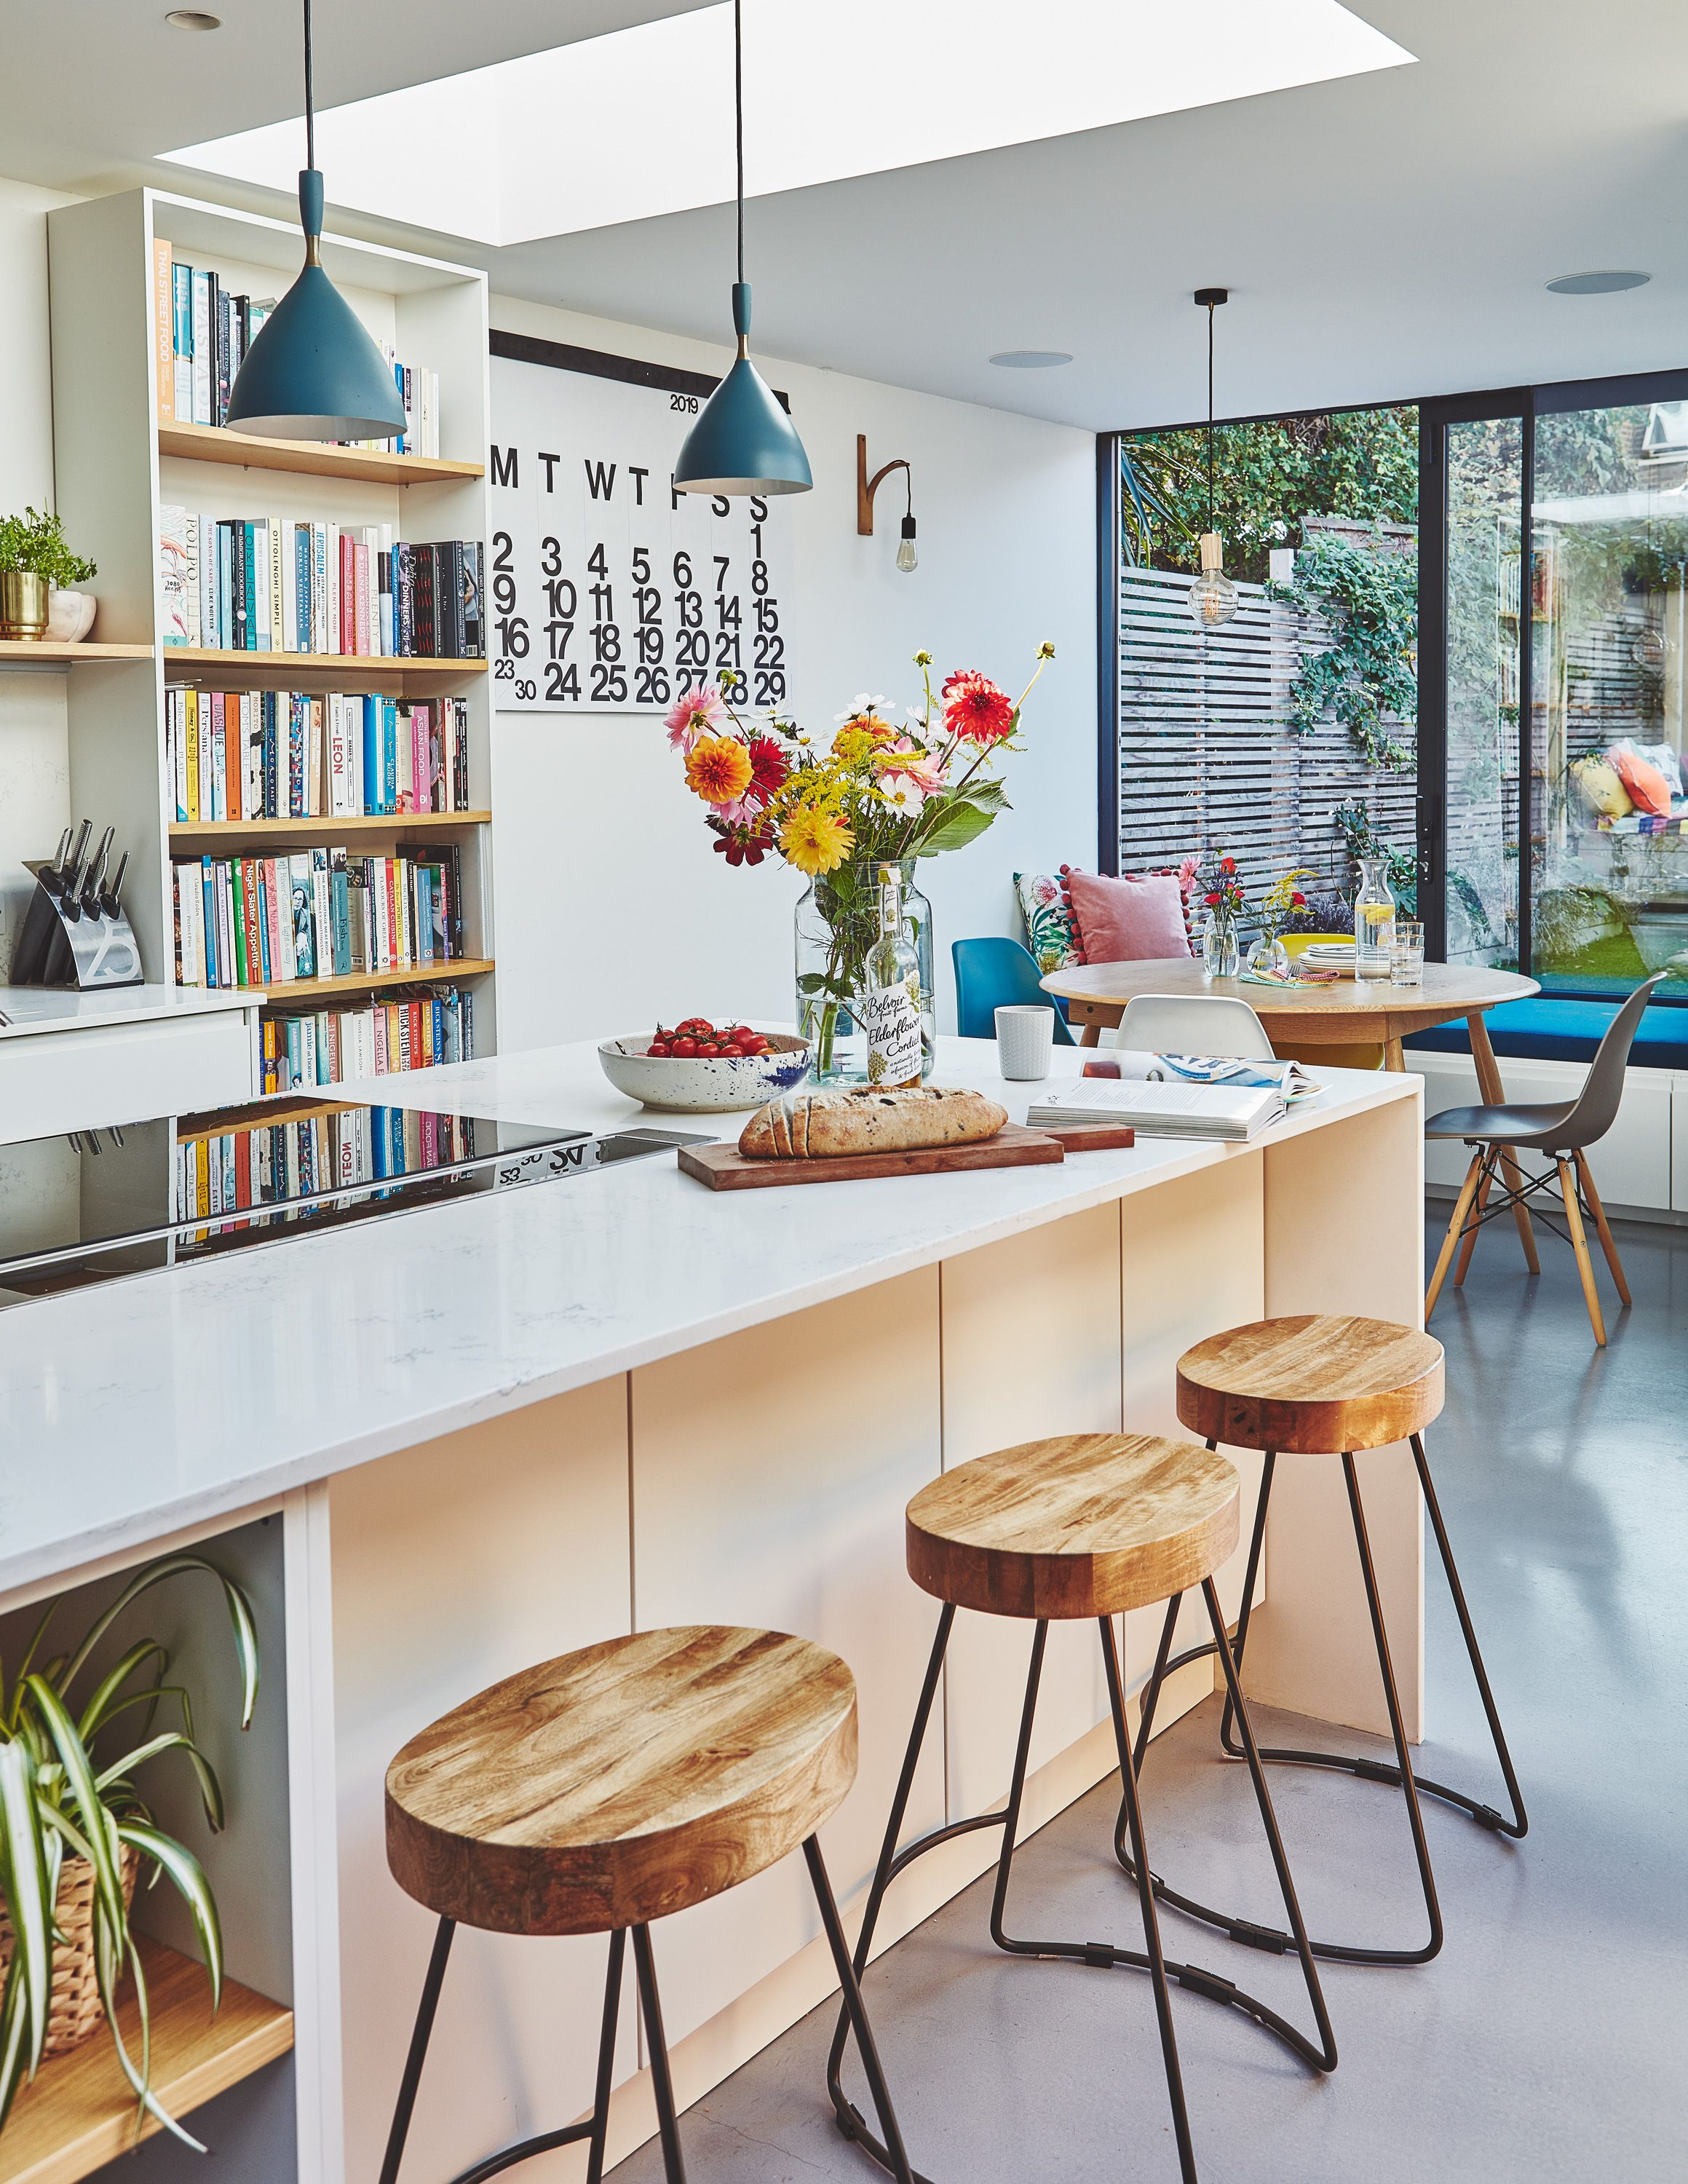 65+ kitchen ideas to copy right now